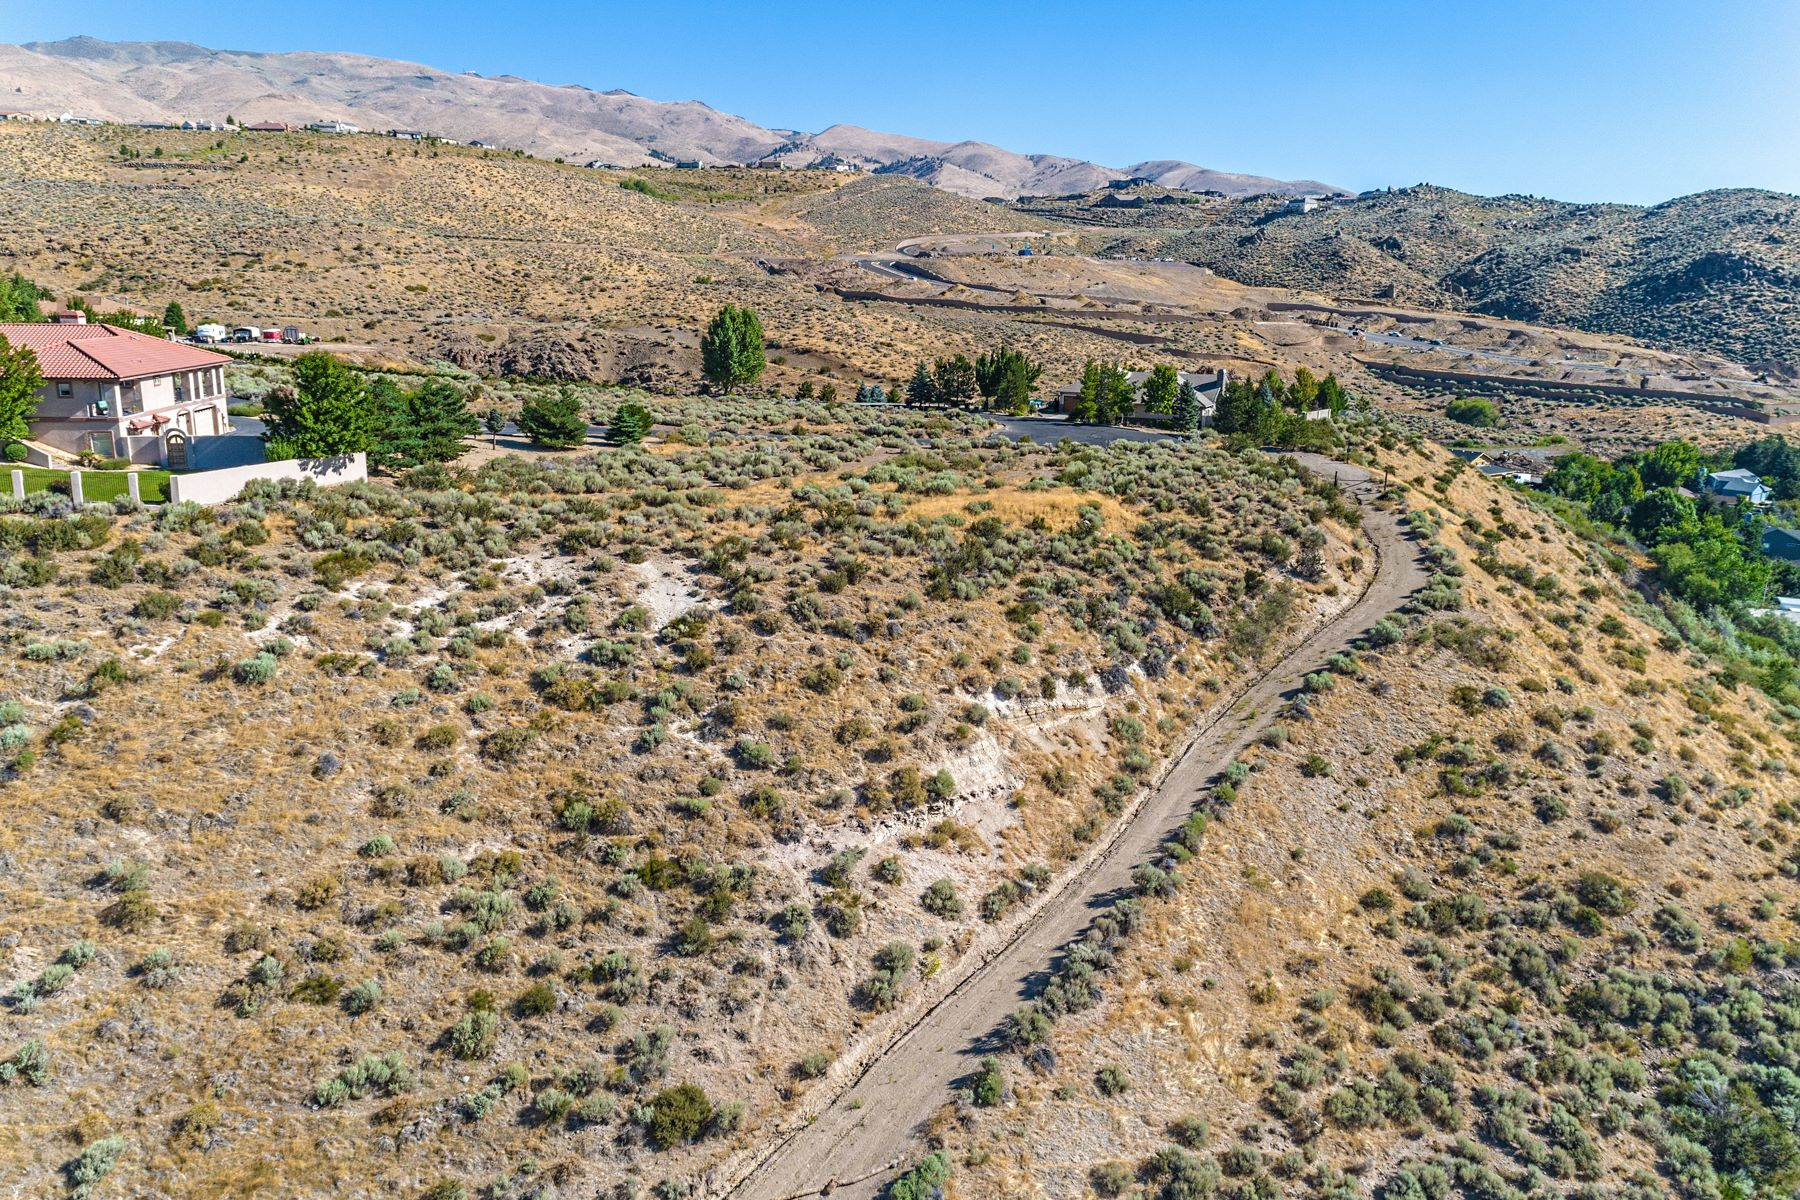 Additional photo for property listing at 000 Mule Deer Ct. PAR. 1-D-3, Reno, Nevada 89523 000 Mule Deer Ct. PAR. 1-D-3 Reno, Nevada 89523 United States